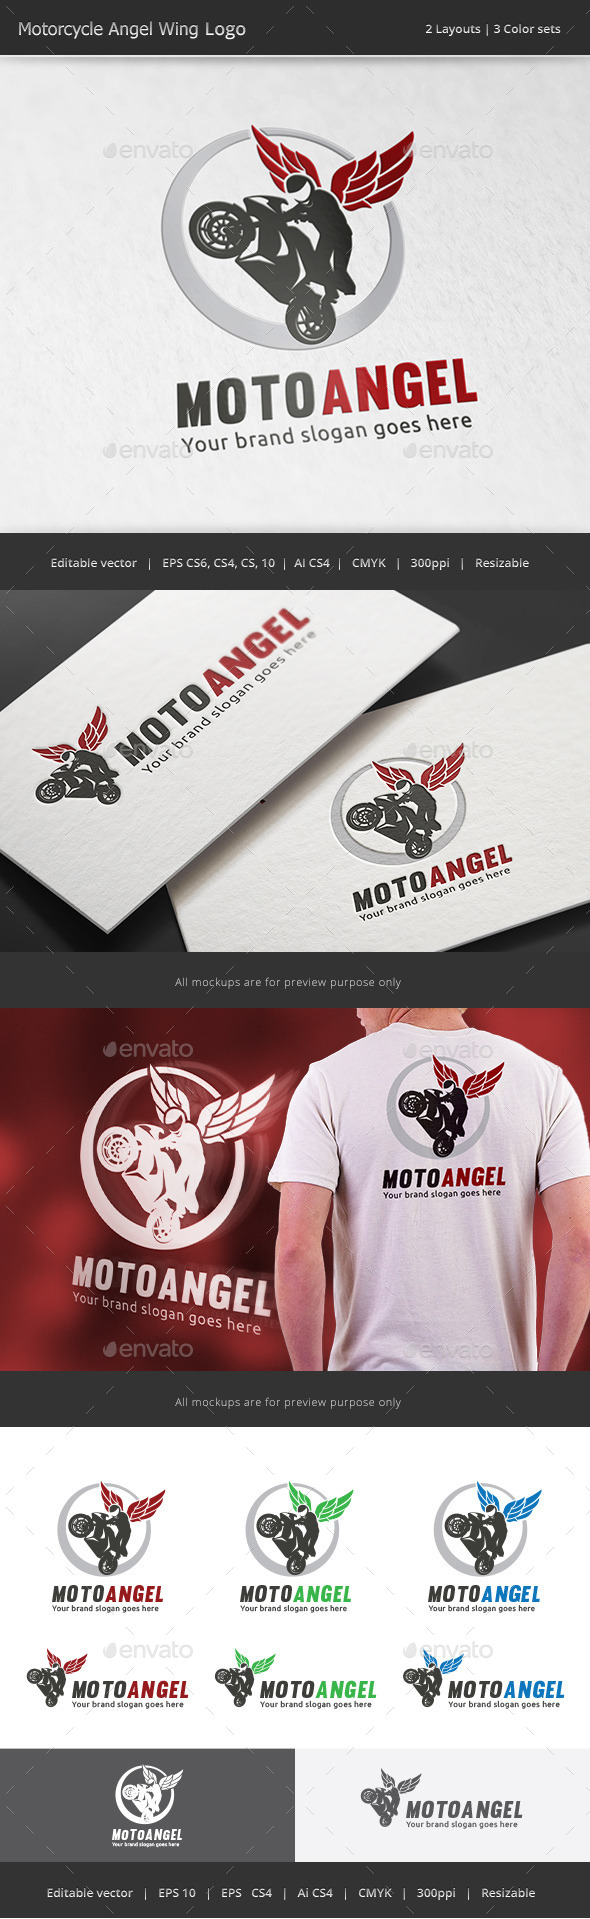 Motorcycle Angel Wing Logo - Vector Abstract